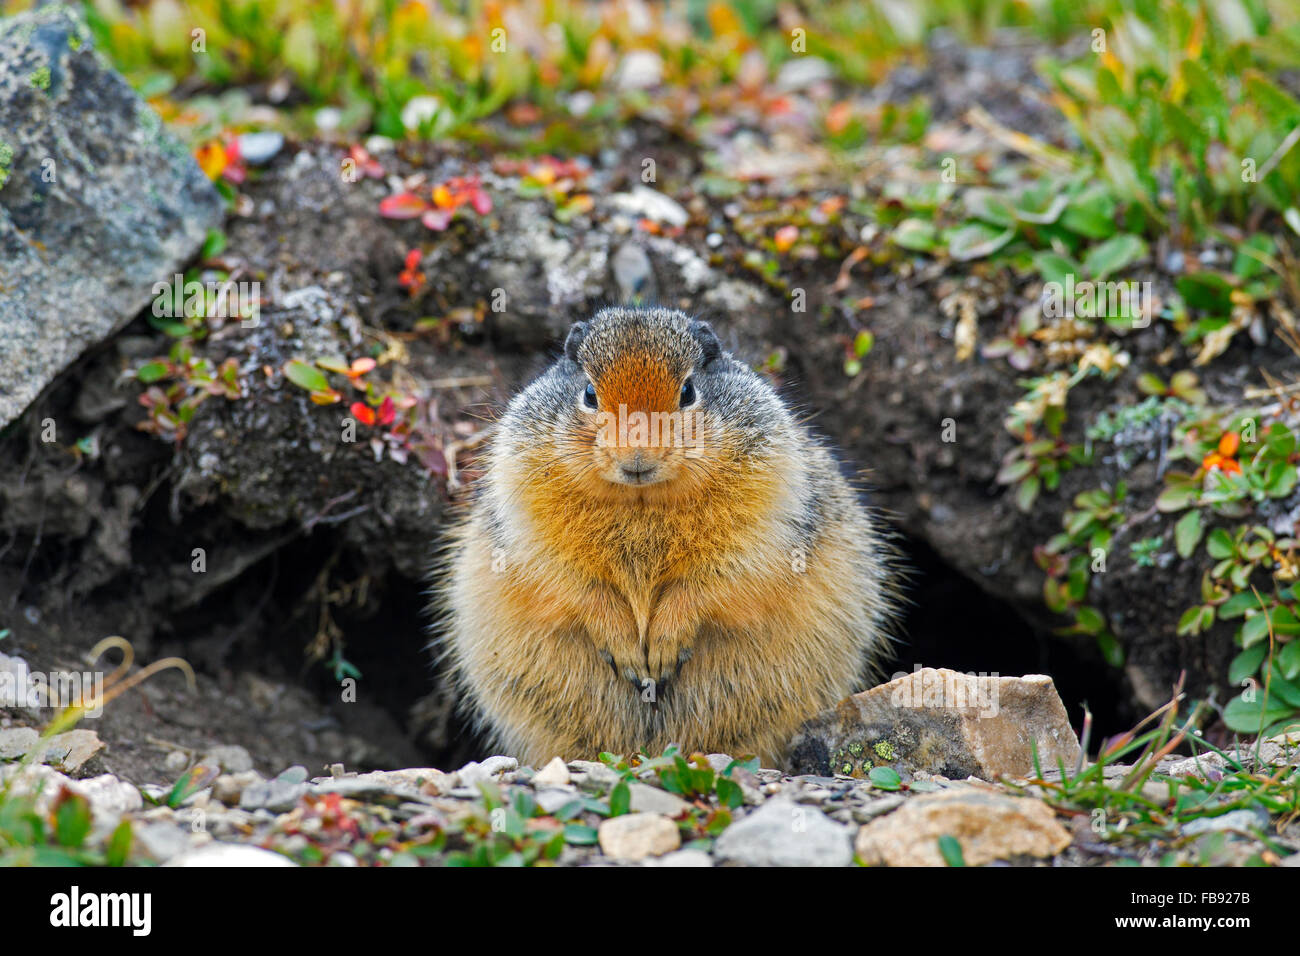 Columbian ground squirrel (Urocitellus columbianus / Spermophilus columbianus) in front of burrow, native to Canada Stock Photo